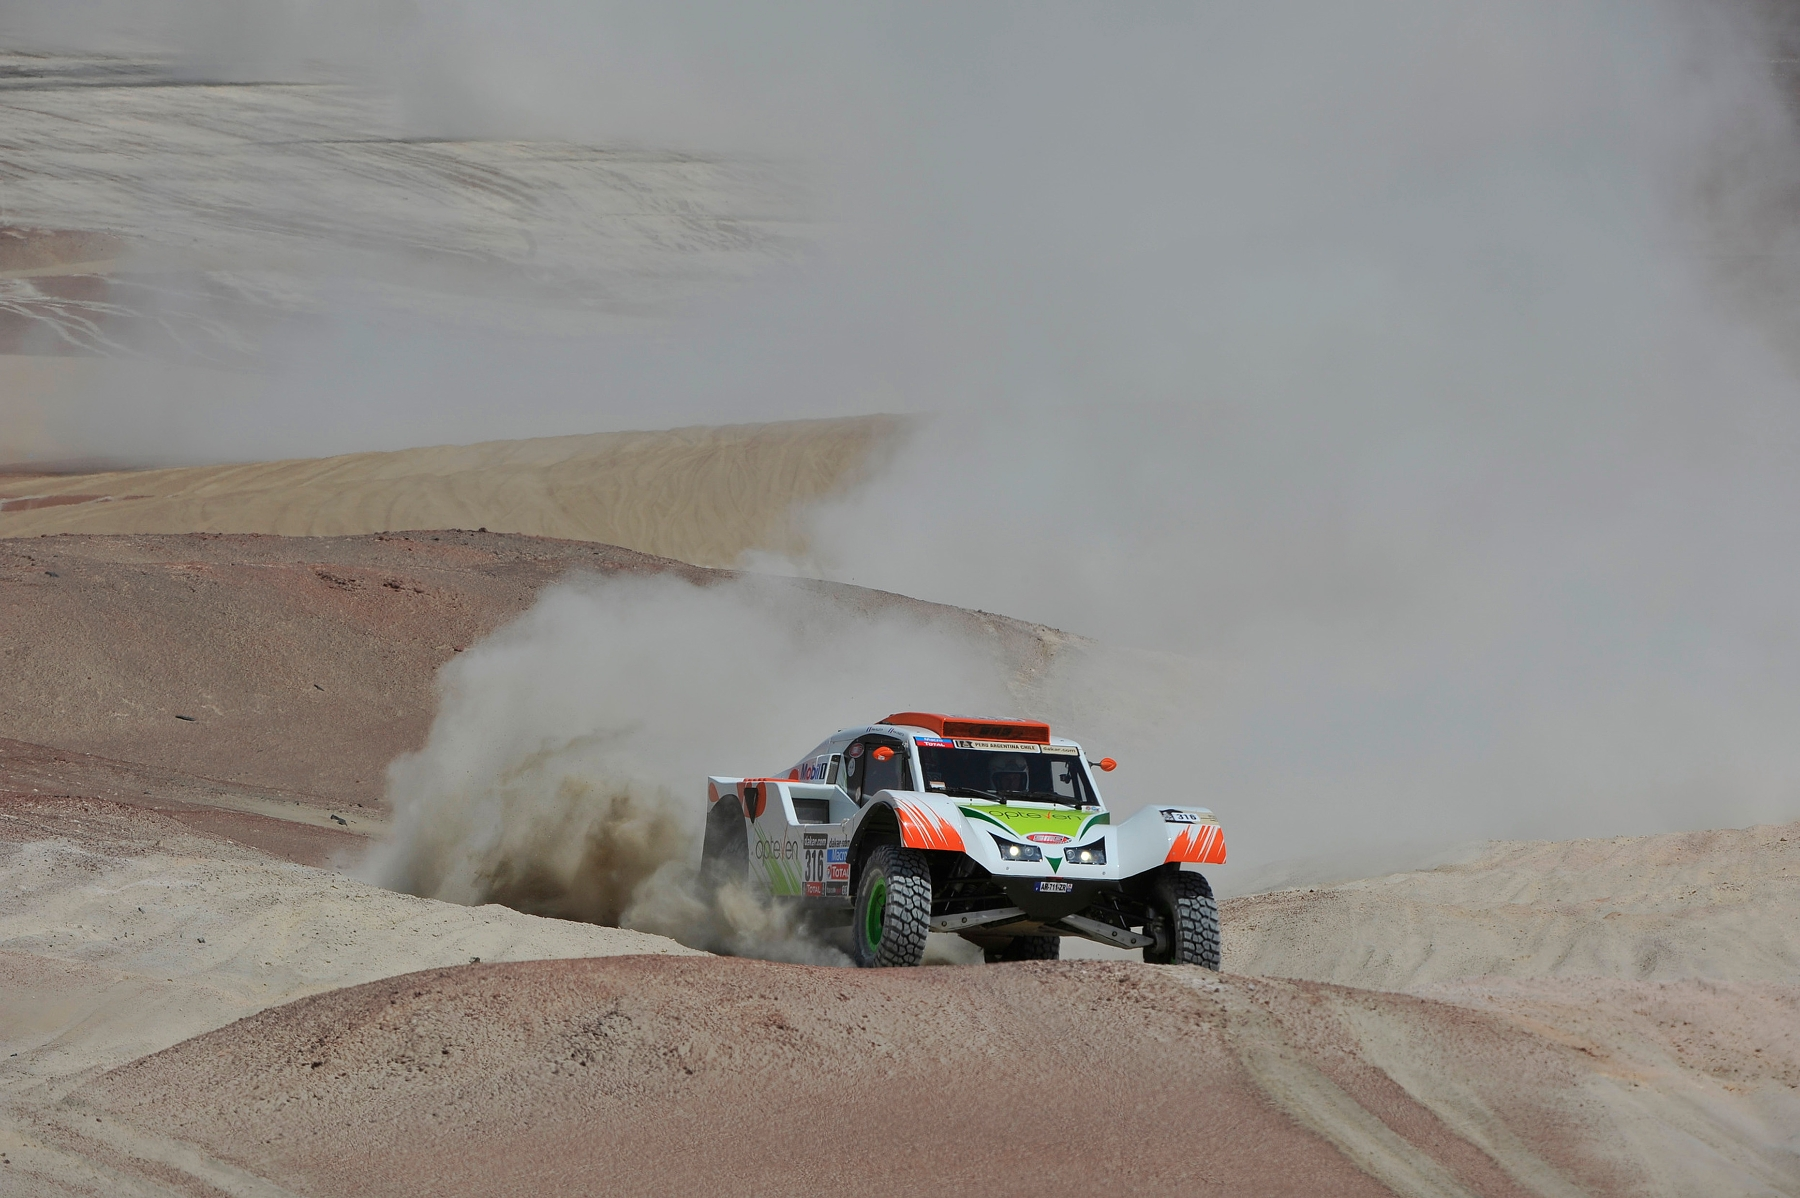 MOTORSPORT - DAKAR PERU CHILE ARGENTINA  2013 - STAGE 3 / ETAPE 3 - PISCO  (PER) TO NAZCA (PER) - 07/01/2013 - PHOTO : ERIC VARGIOLU / DPPI -  316 CHABOT RONAN ( FRANCE ) PILLOT GILLES ( FRANCE ) - SMG - TOYS MOTORS - SMG - ACTION